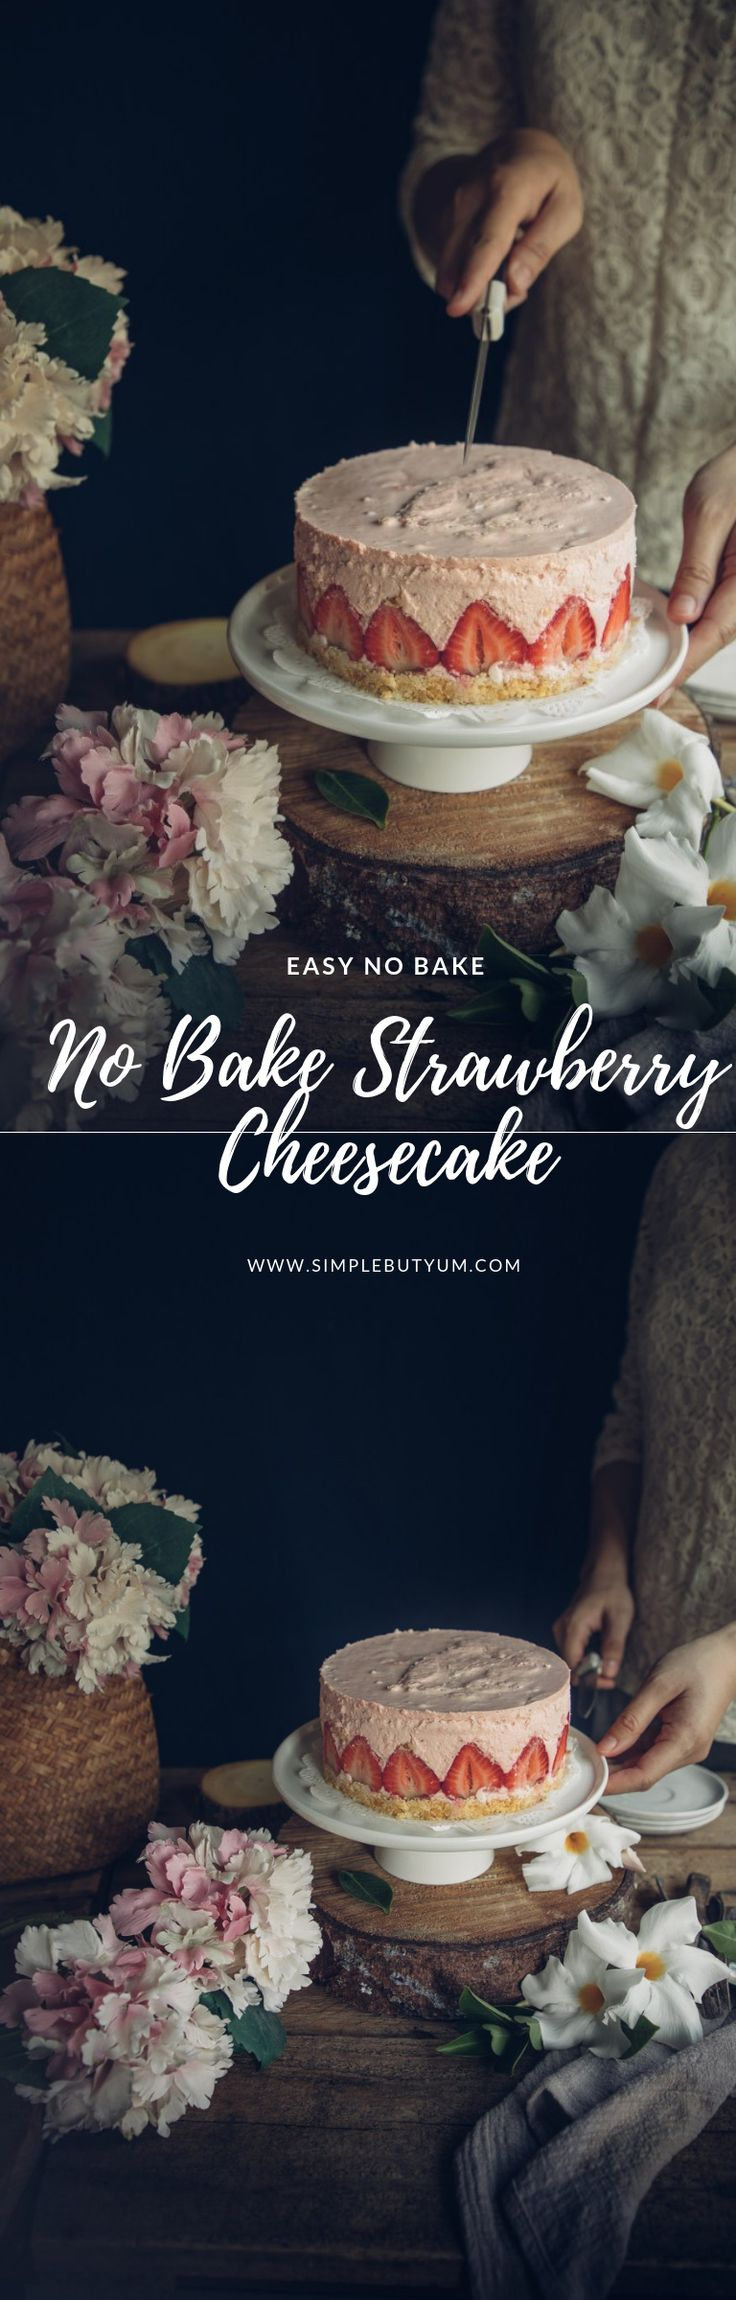 This No-bake Strawberry Cheesecake is extra creamy and bursting with strawberries. It is light, fluffy and loaded with s…